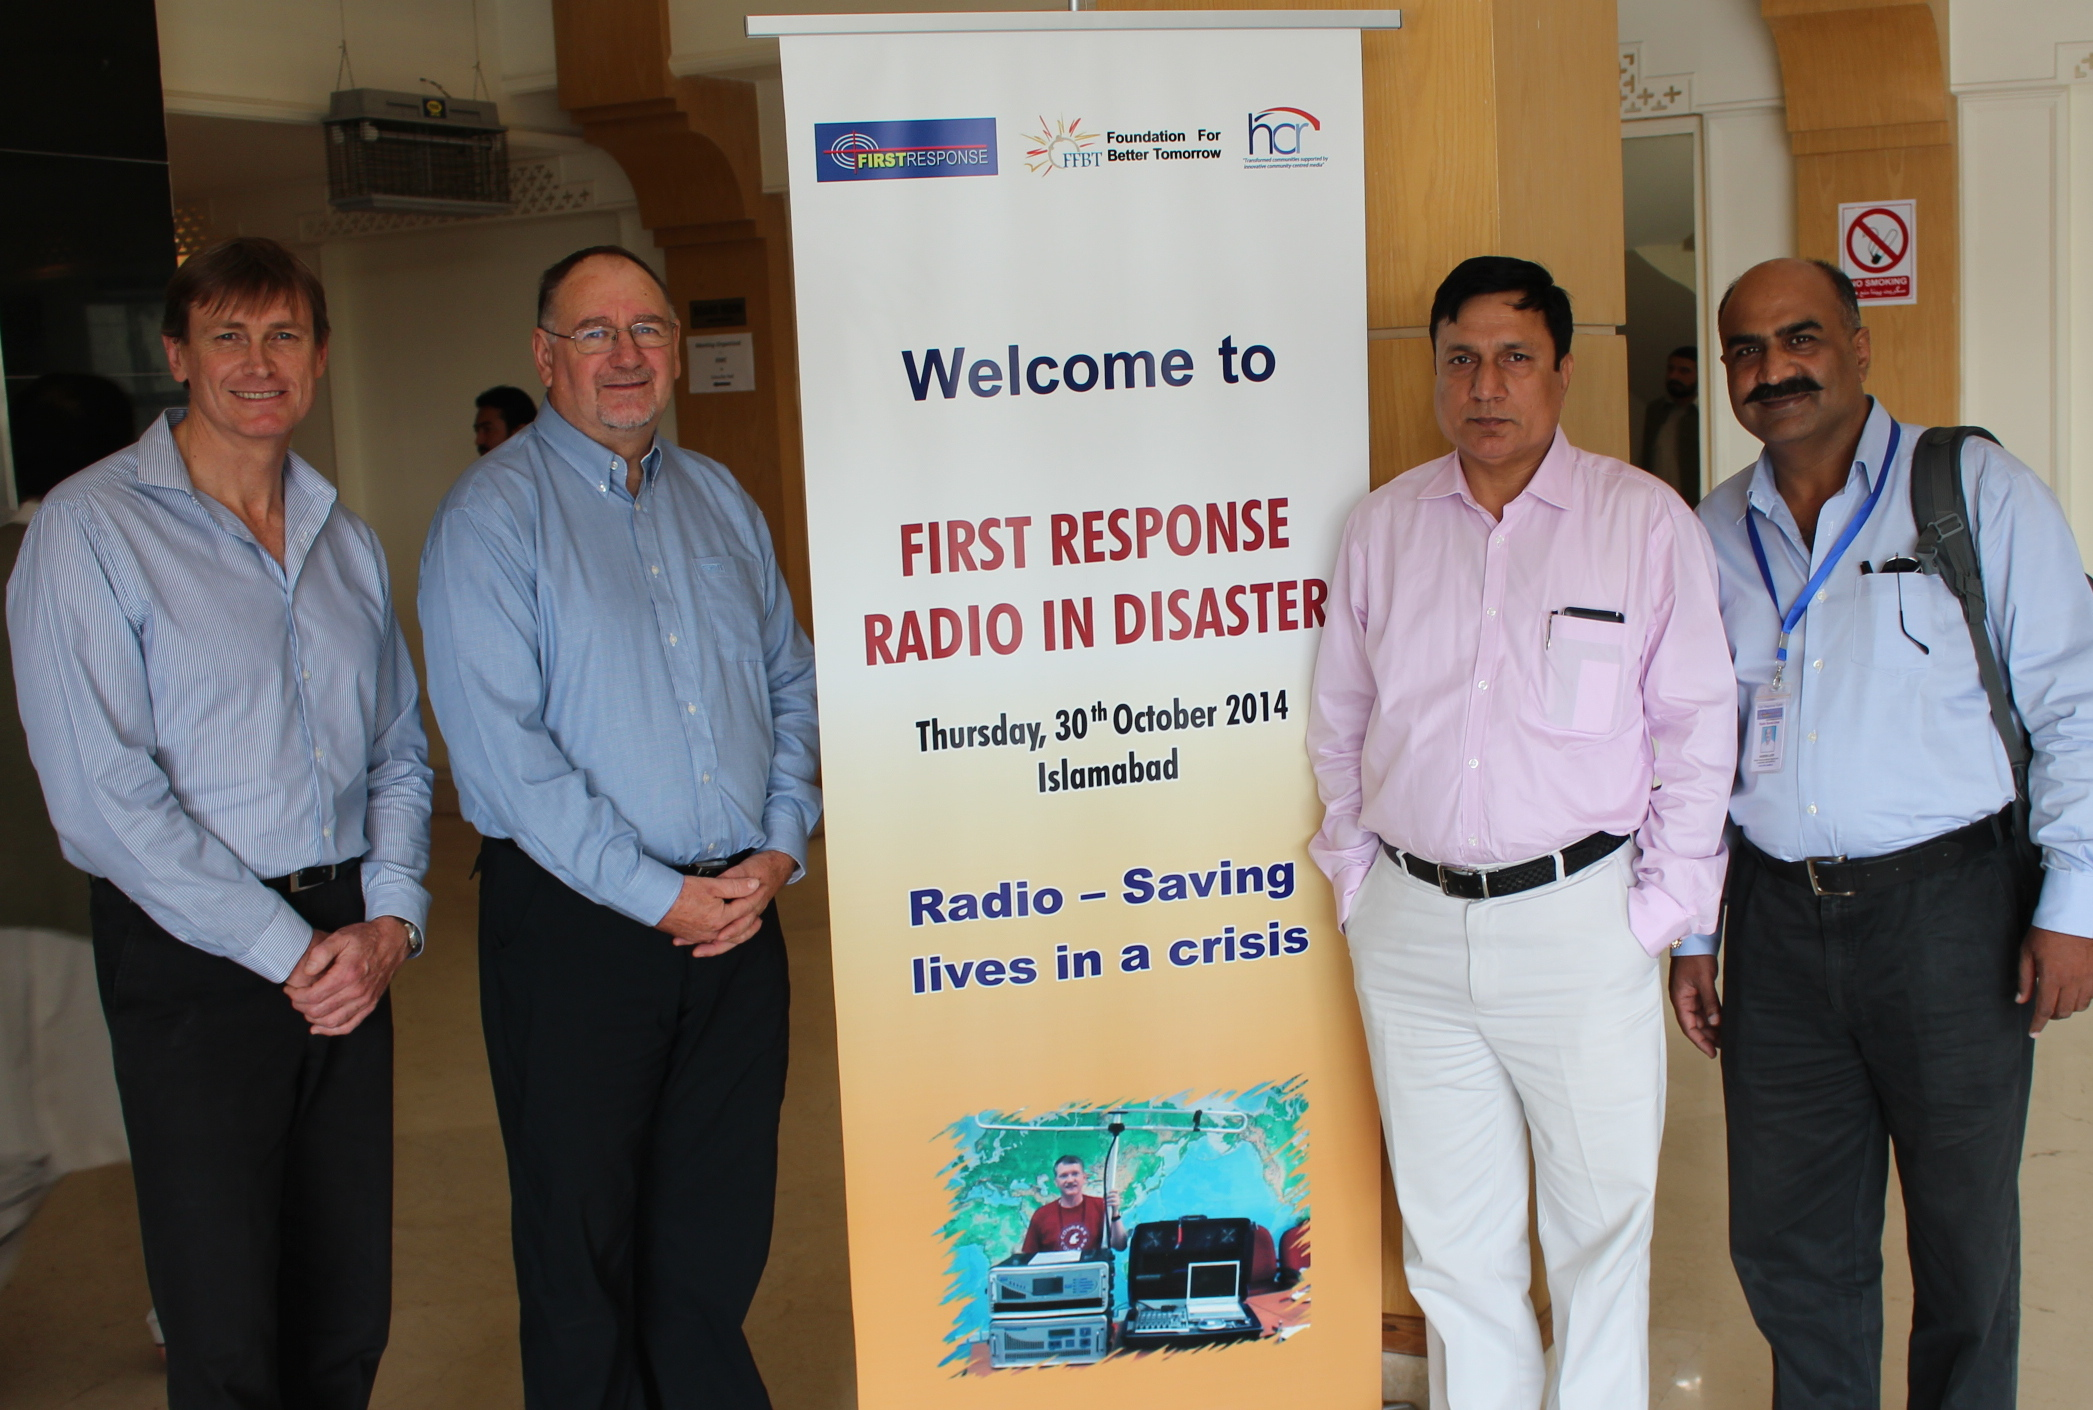 HCR's Jon Hargreaves, Ross James and Hazeen Latif with Shaikh Wasim Ahmed, CEO of FFTB